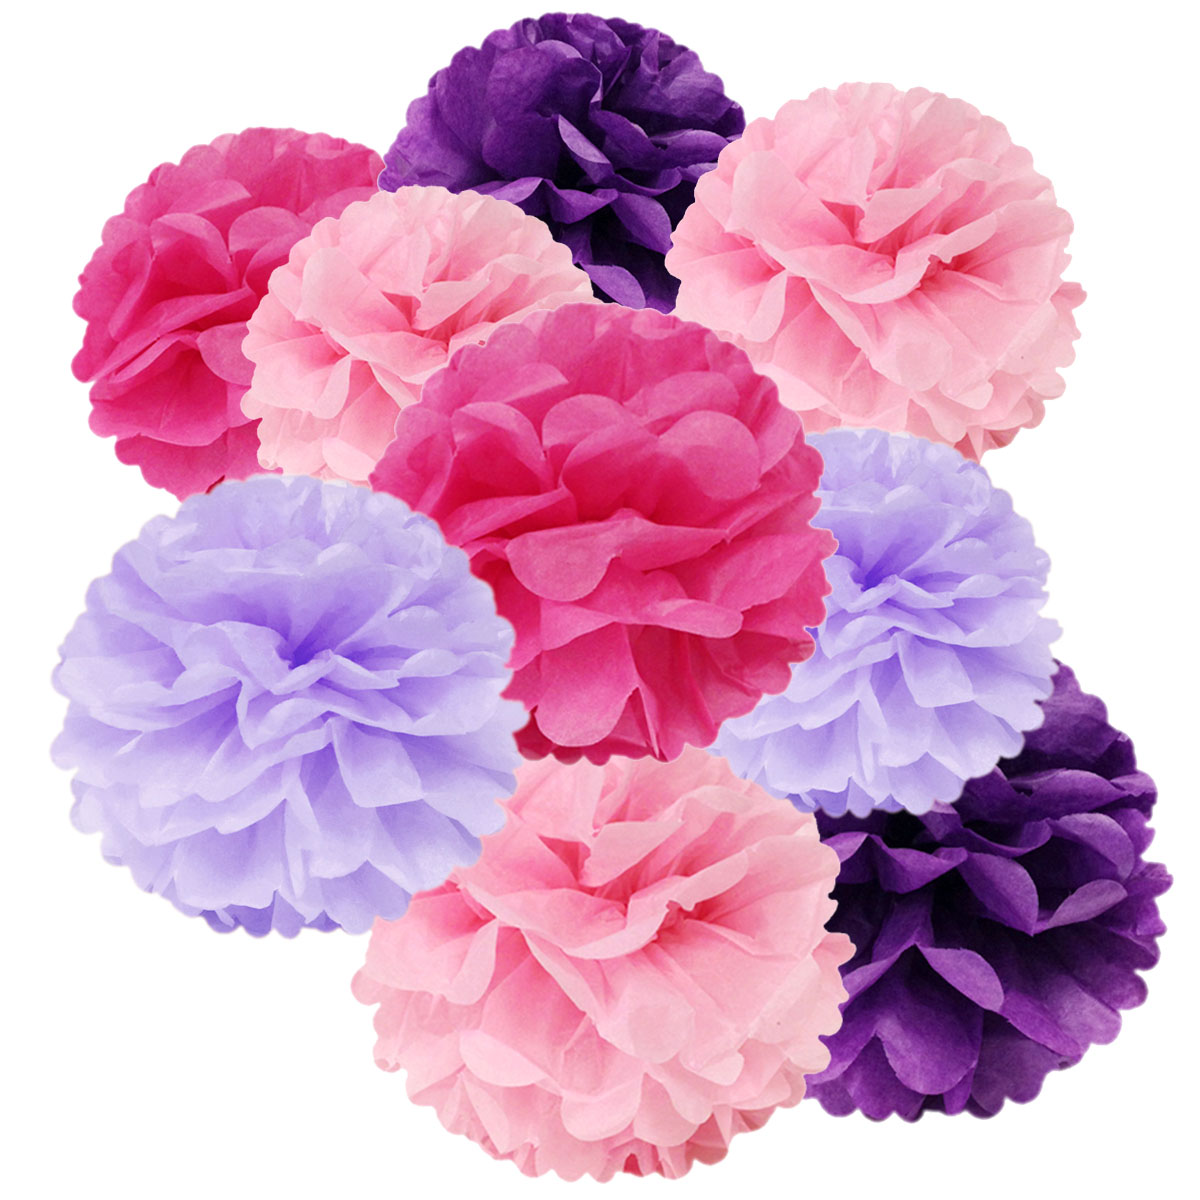 Wrapables® Set of 12 Tissue Pom Pom Party Decorations for Weddings, Birthday Parties Baby Showers and Nursery Decor, Lavender/Bright Purple/Hot Pink/Pink